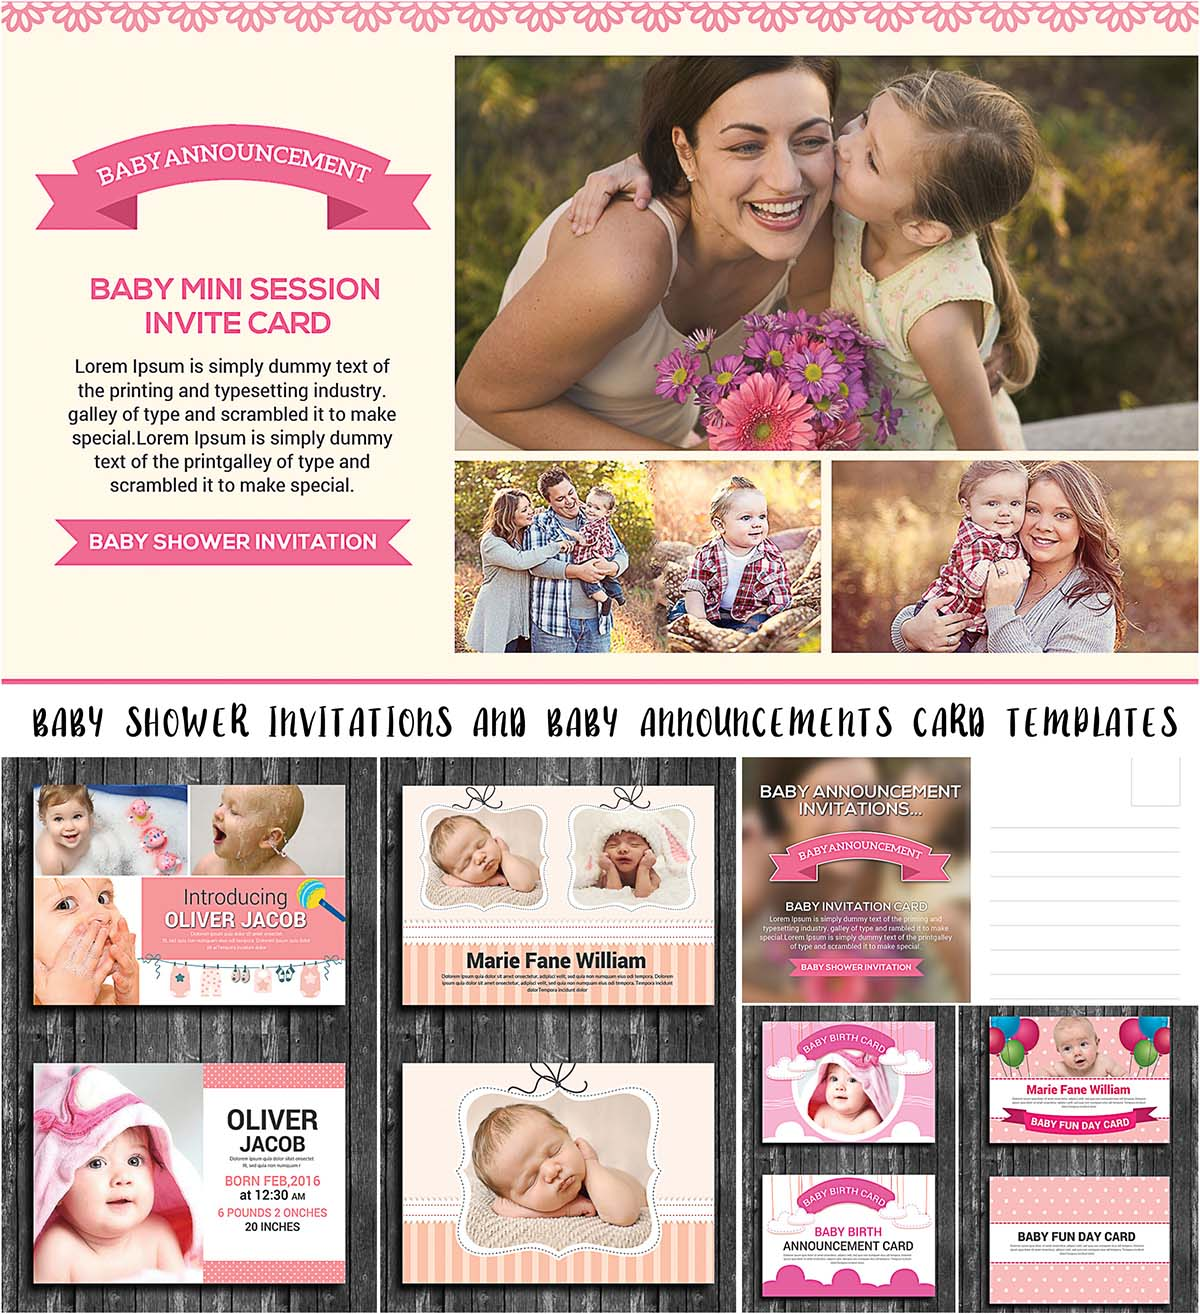 Baby announcement cards and baby shower templates